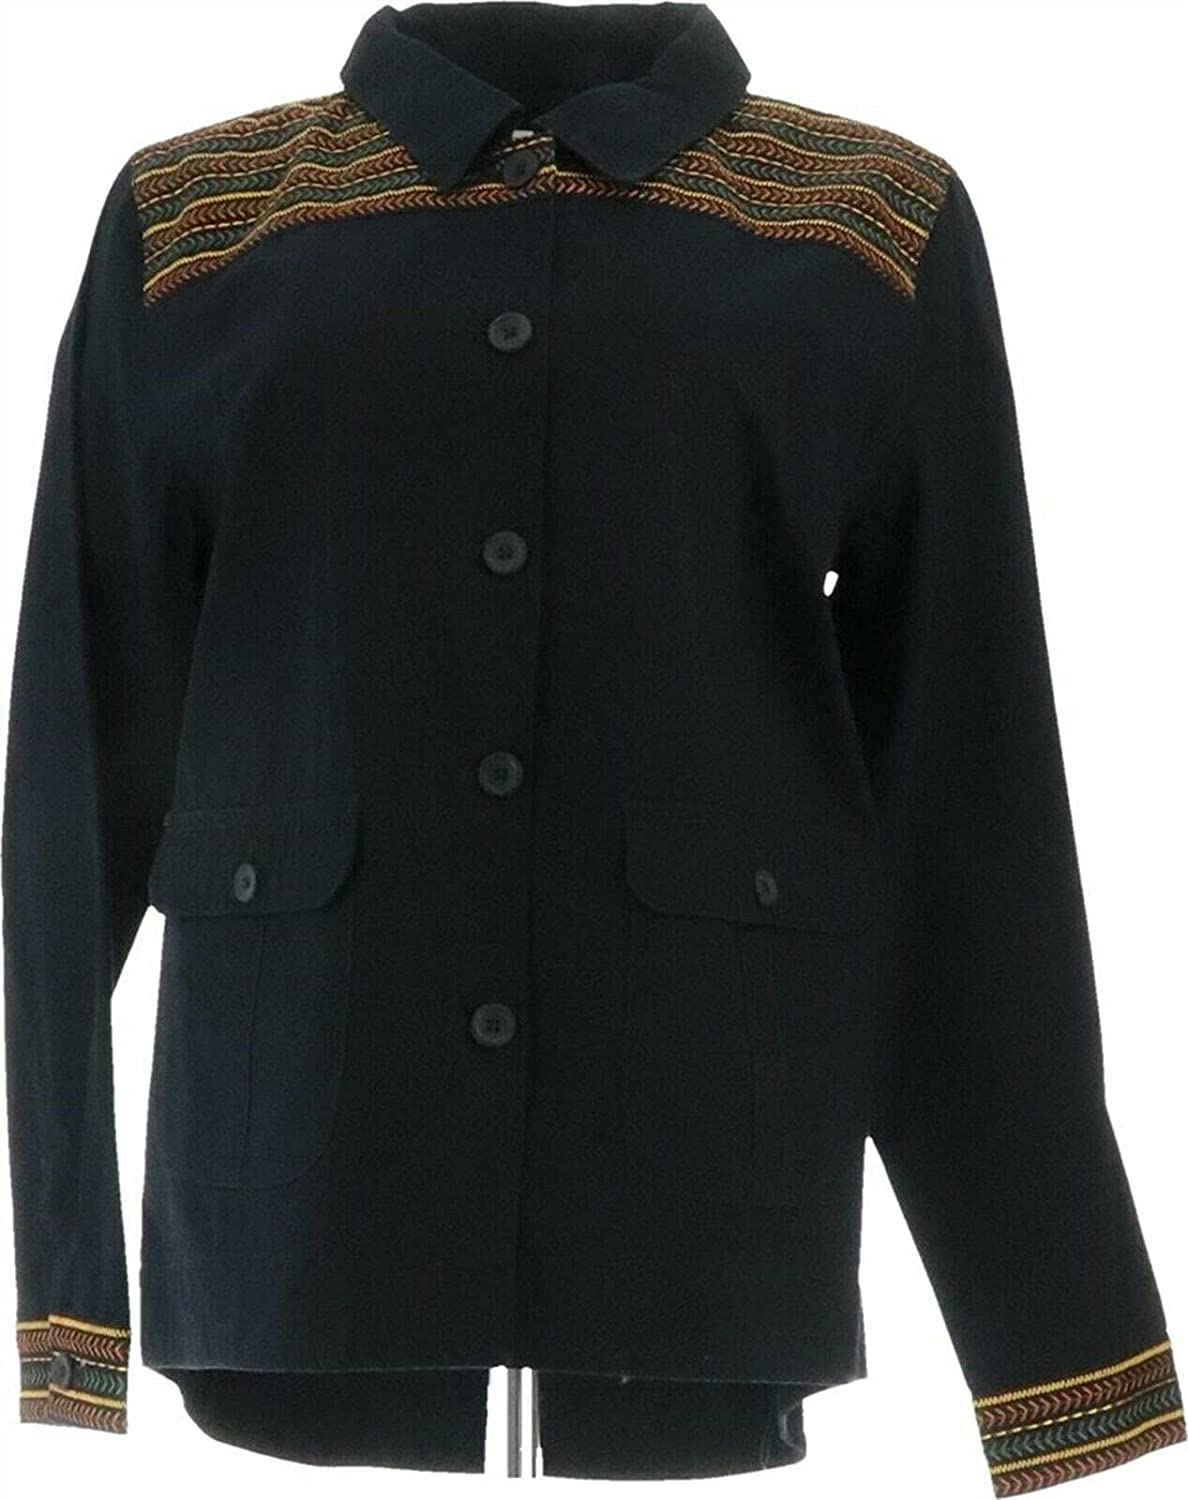 Denim& Co Cotton Twill Utility Jacket Embroidery A378280